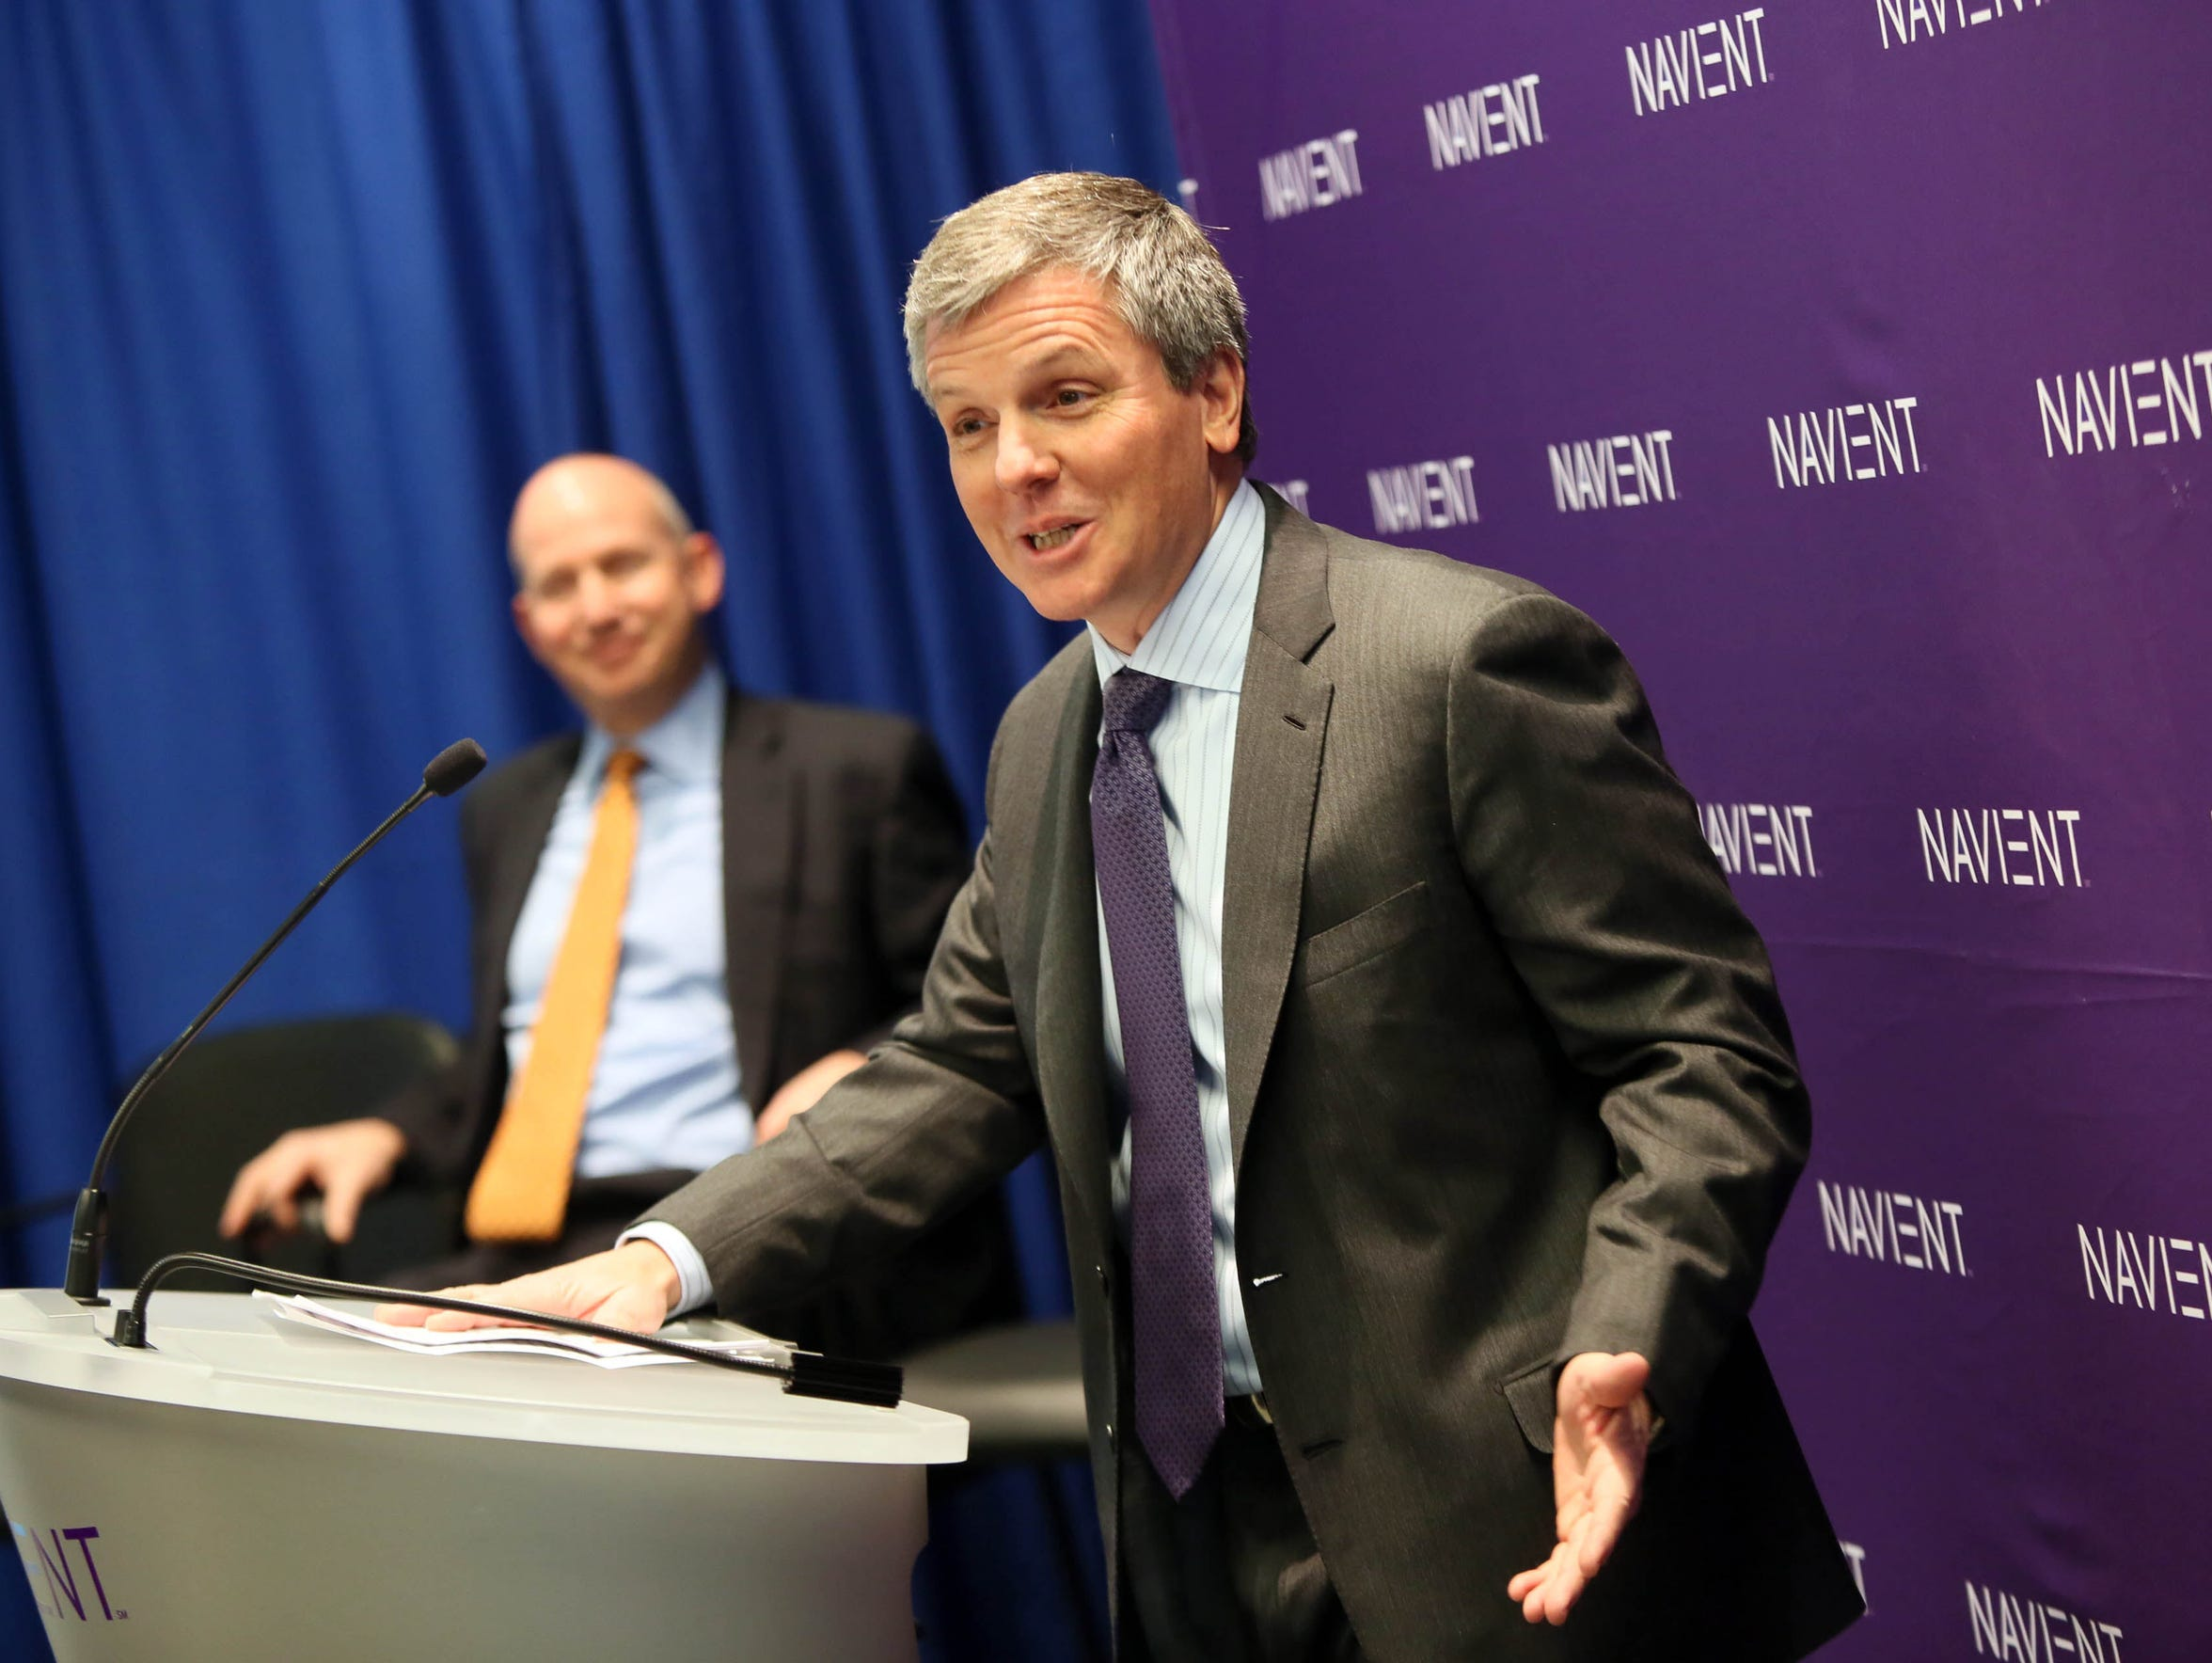 Wilmington-based Navient is the nation's largest servicer